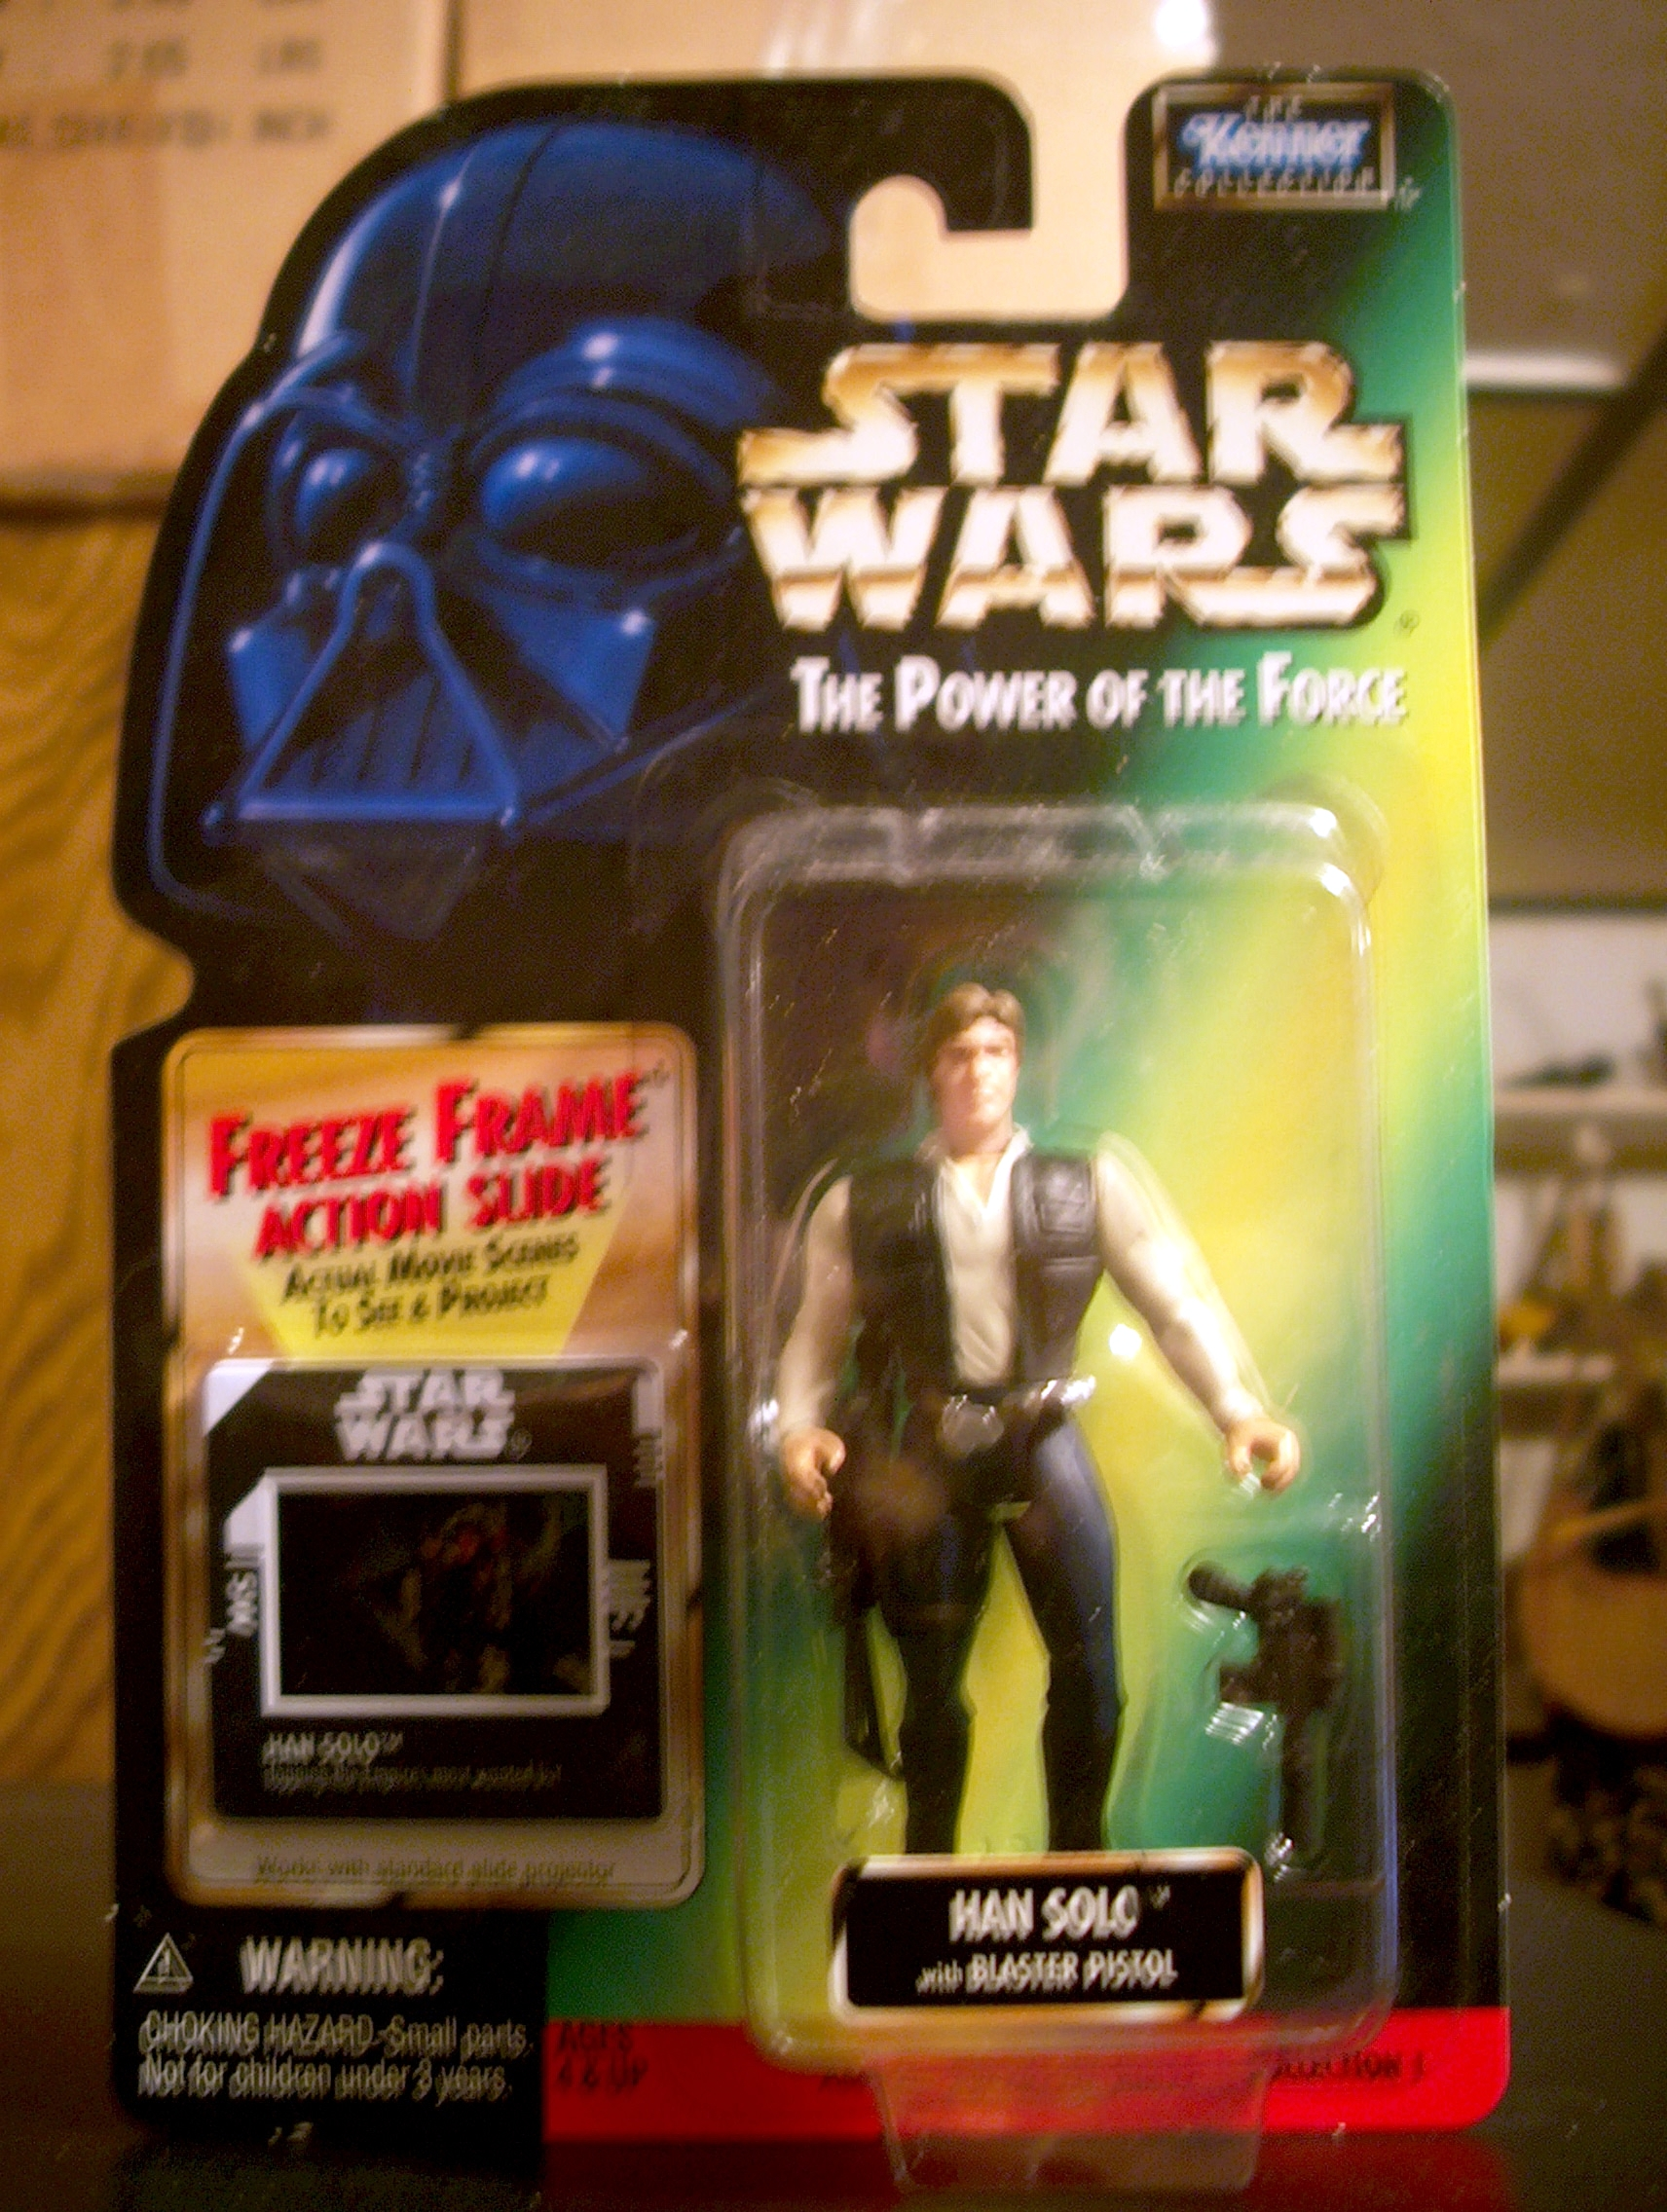 Han Solo with Blaster Pistol (.02)